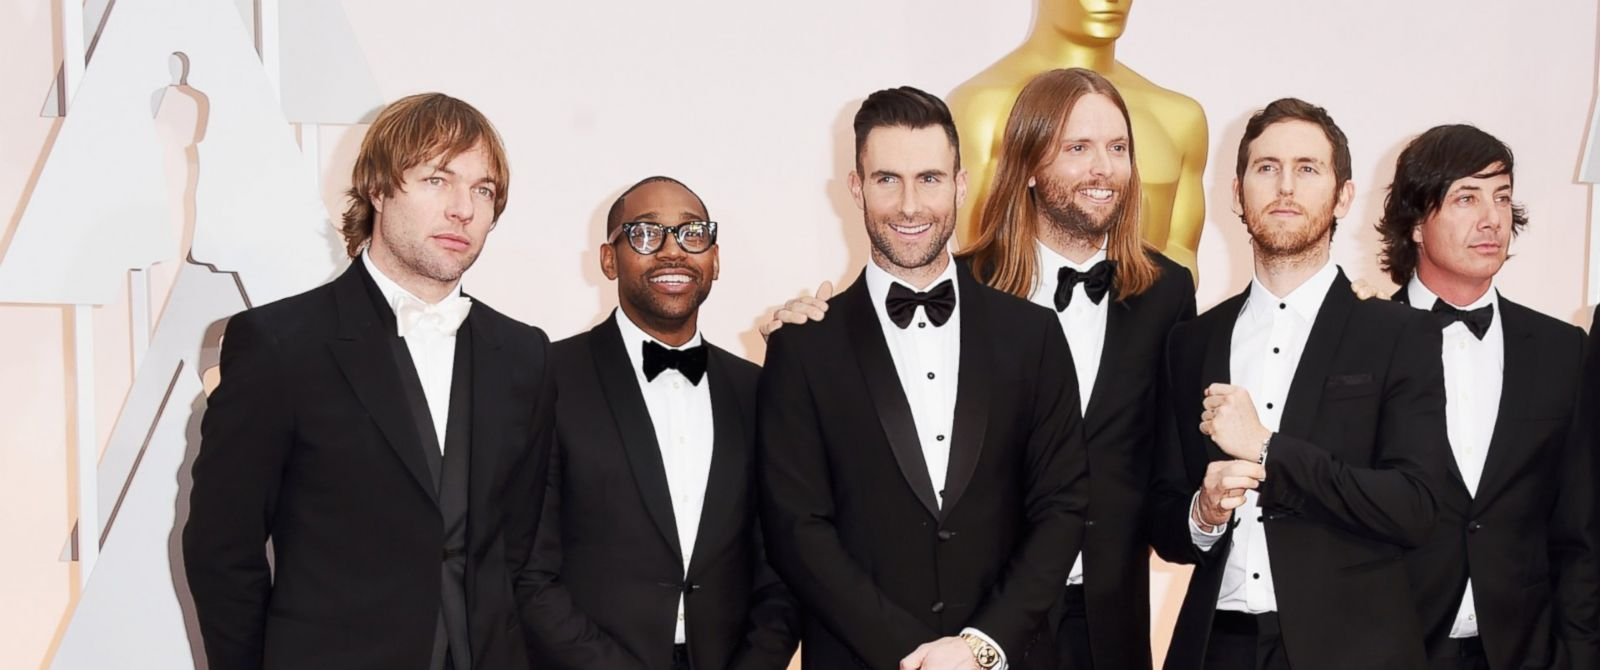 PHOTO: Michael Madden, PJ Morton, Adam Levine, James Valentine, Jesse Carmichael, and Matt Flynn of Maroon 5 attends the 87th Annual Academy Awards at Hollywood & Highland Center, Feb. 22, 2015, in Hollywood, Calif.